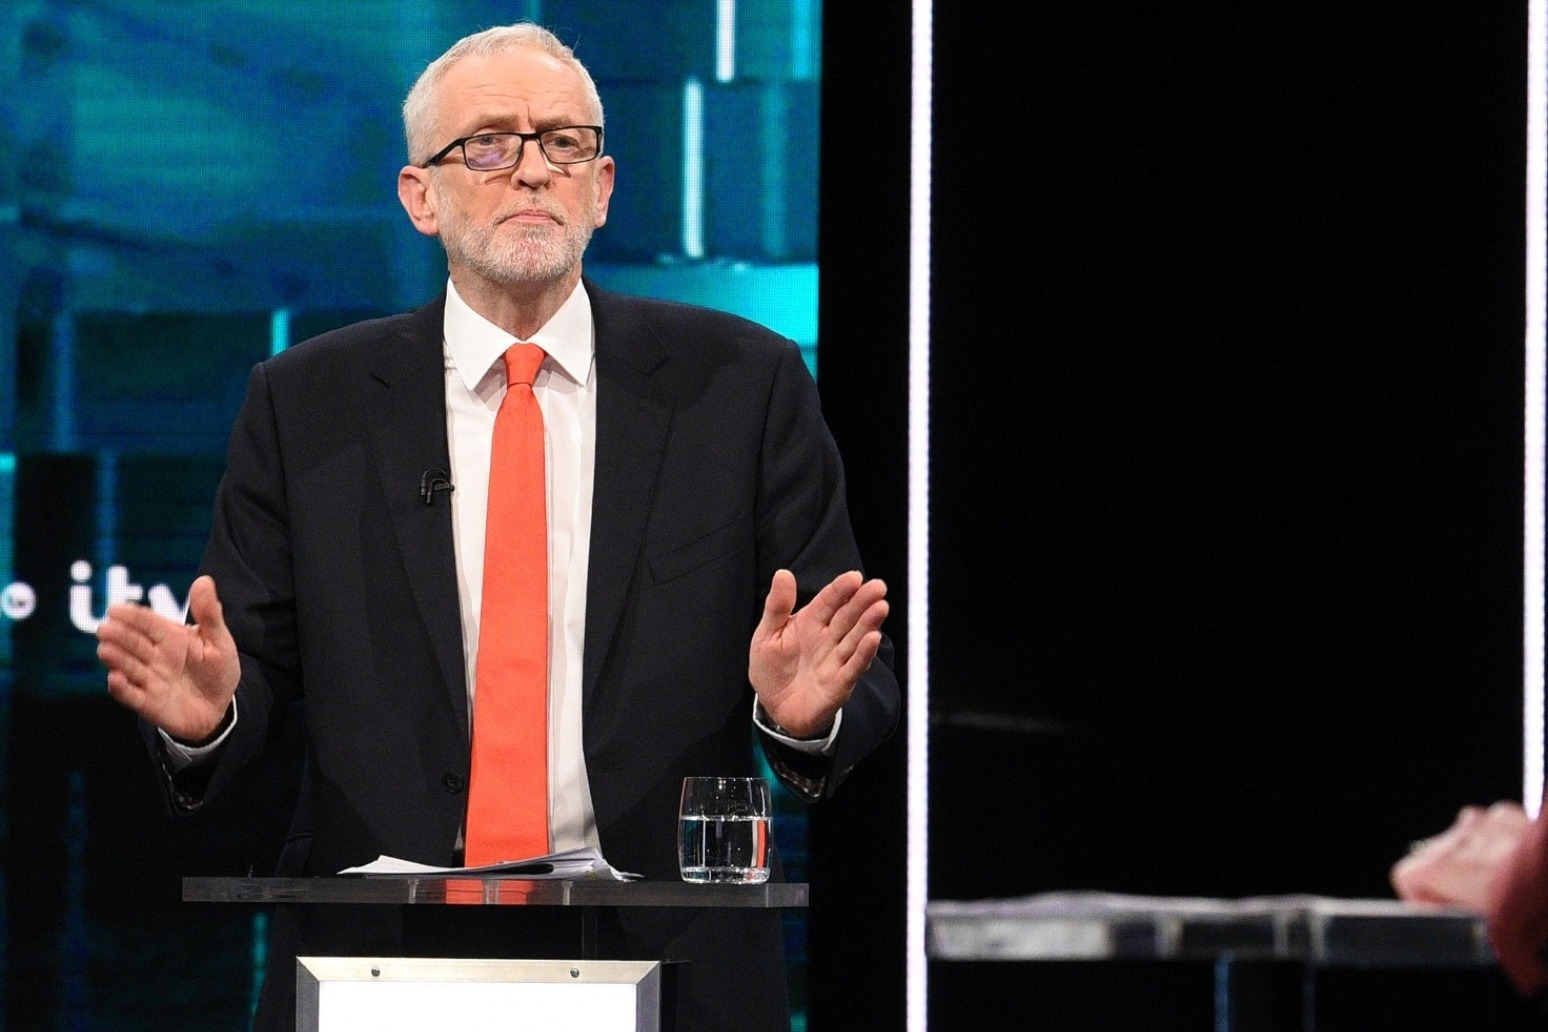 WOE JEREMY CORBYN - LABOUR LEADER BLAMES BREXIT AND PLEDGES TO STAND DOWN